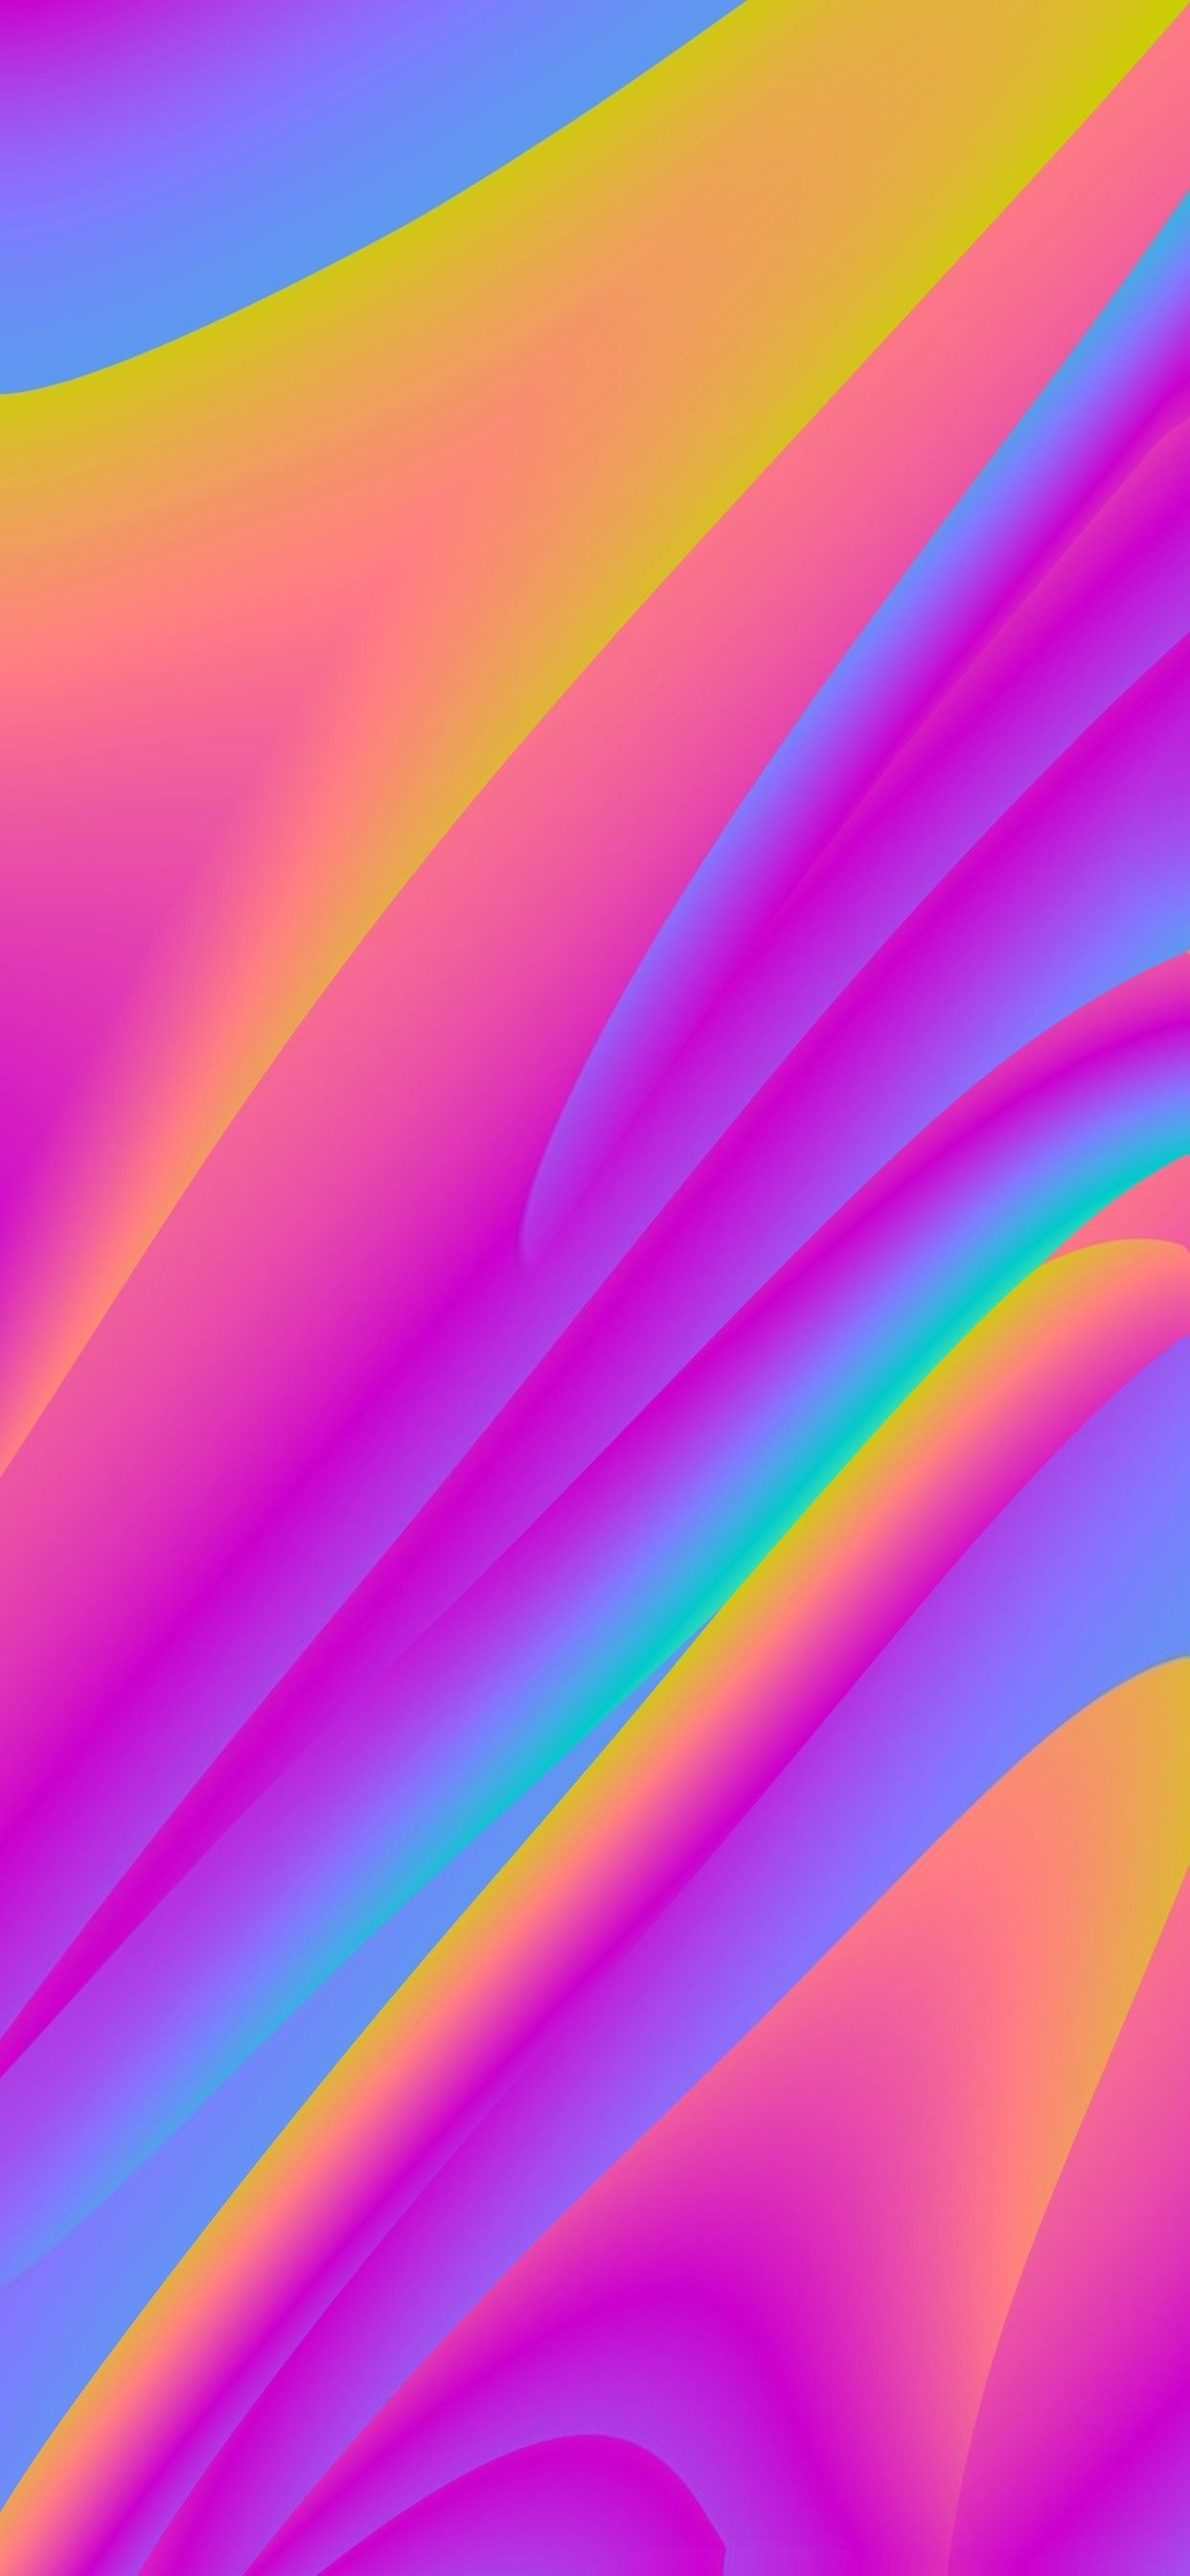 Abstract Mobile Hd Wallpapers 1242x2688 In 2020 Cute Mobile Wallpapers Abstract Samsung Galaxy Wallpaper